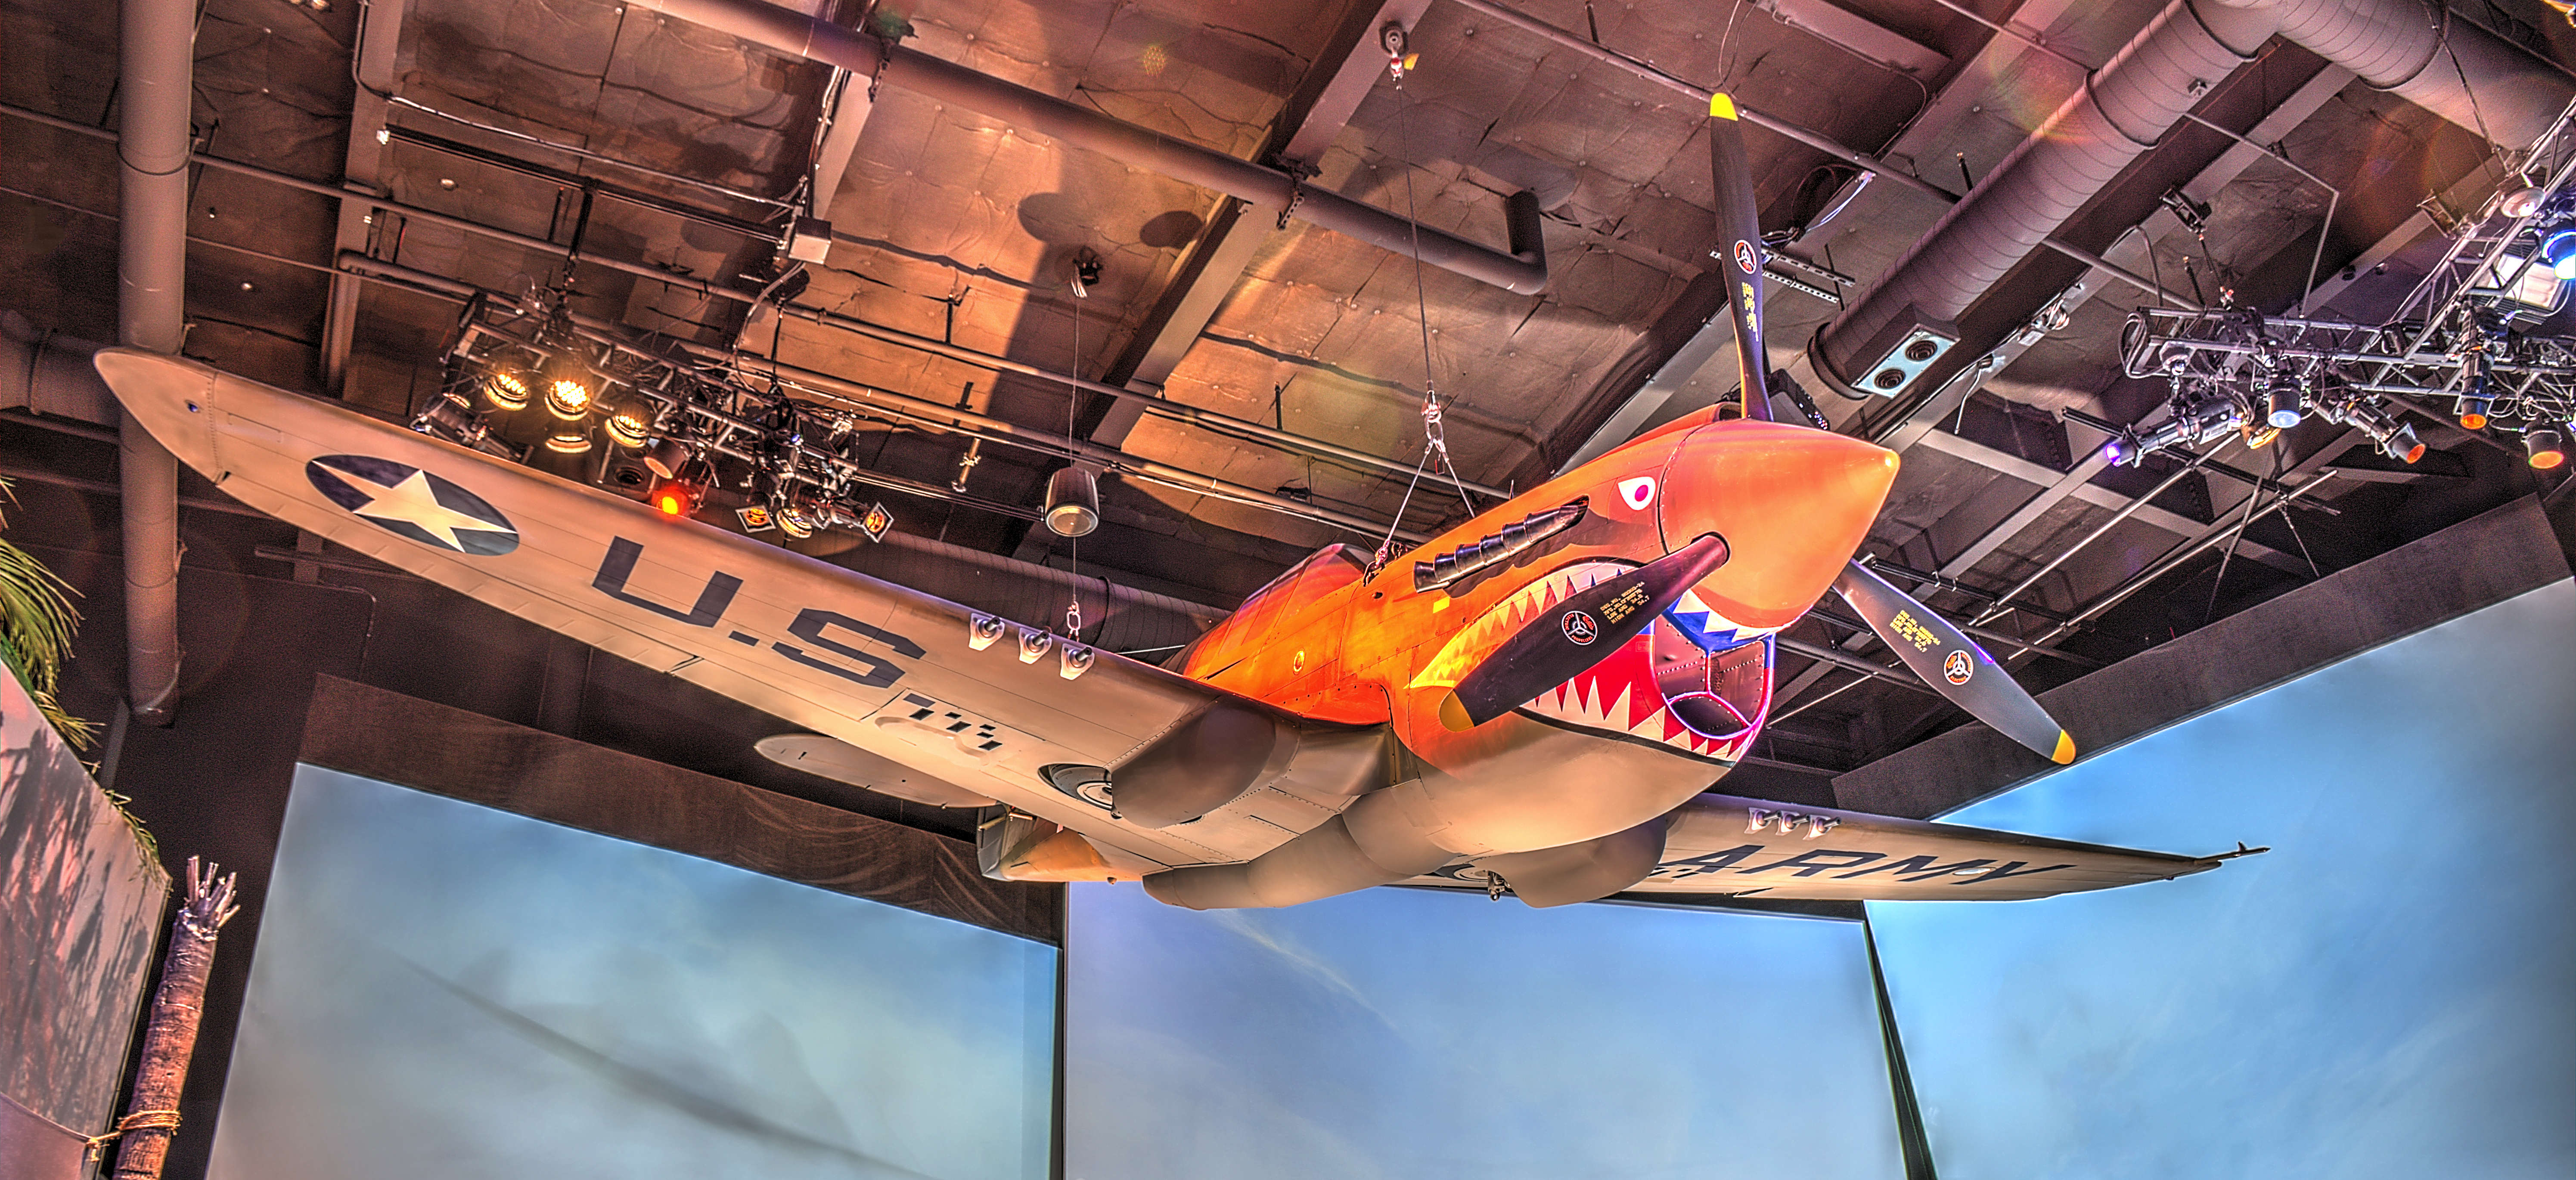 One of the museum's more popular exhibits are its World War II aircraft, such as this Curtiss P-40 Warhawk fighter plane.